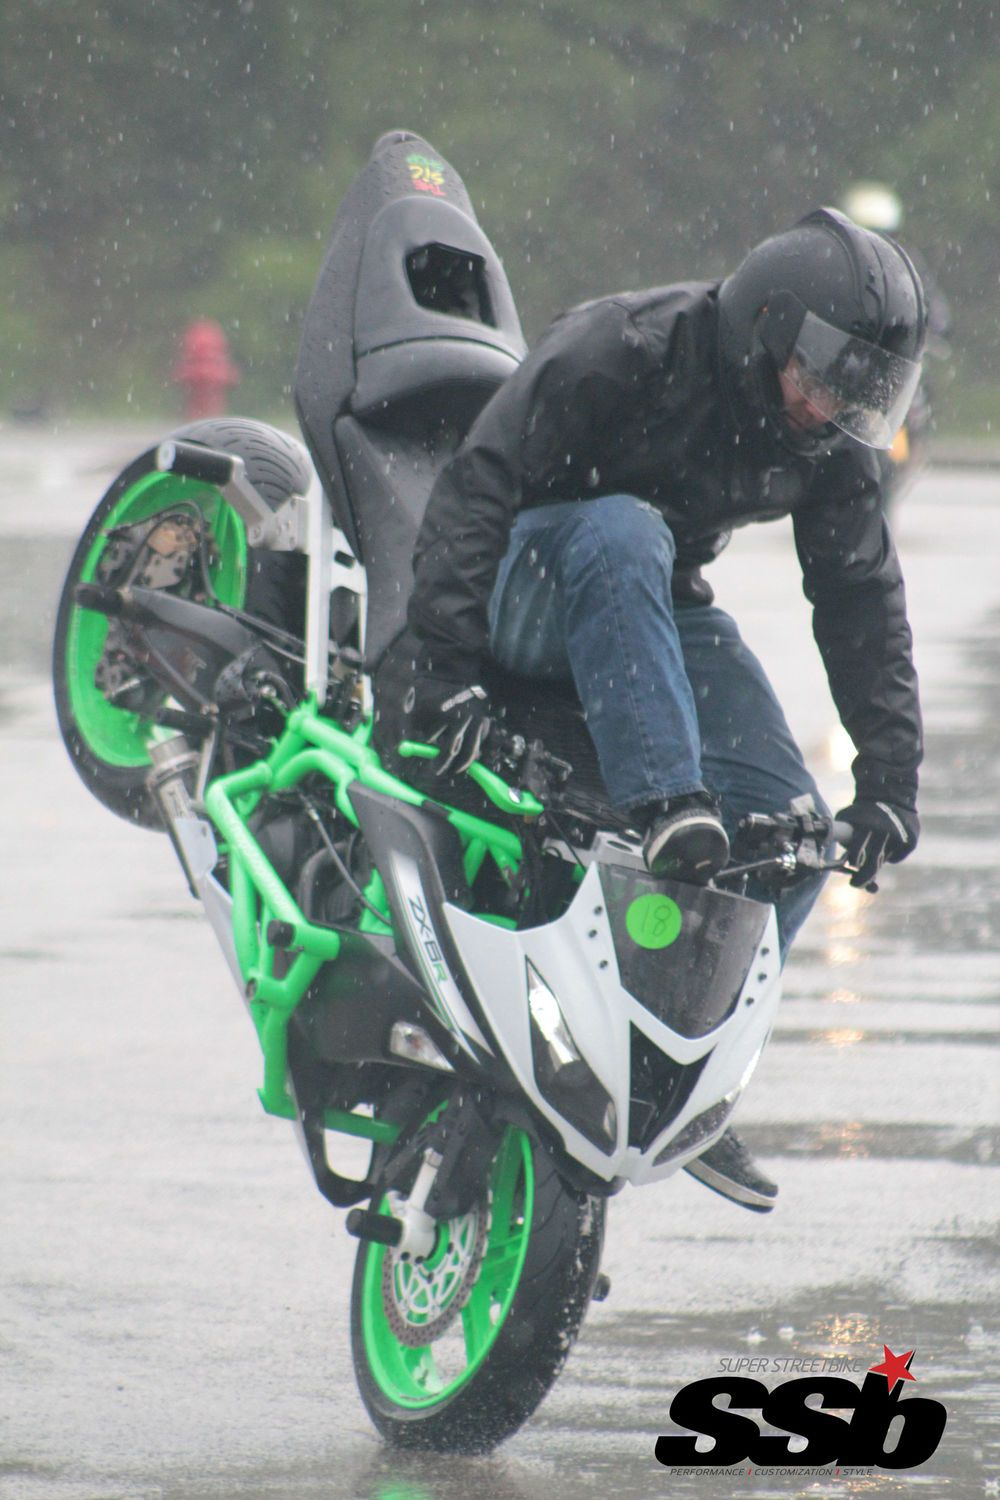 Tony Perez pulls off a high chair stoppie in the pouring rain during Speed and Strength Pro Freestyle practice.